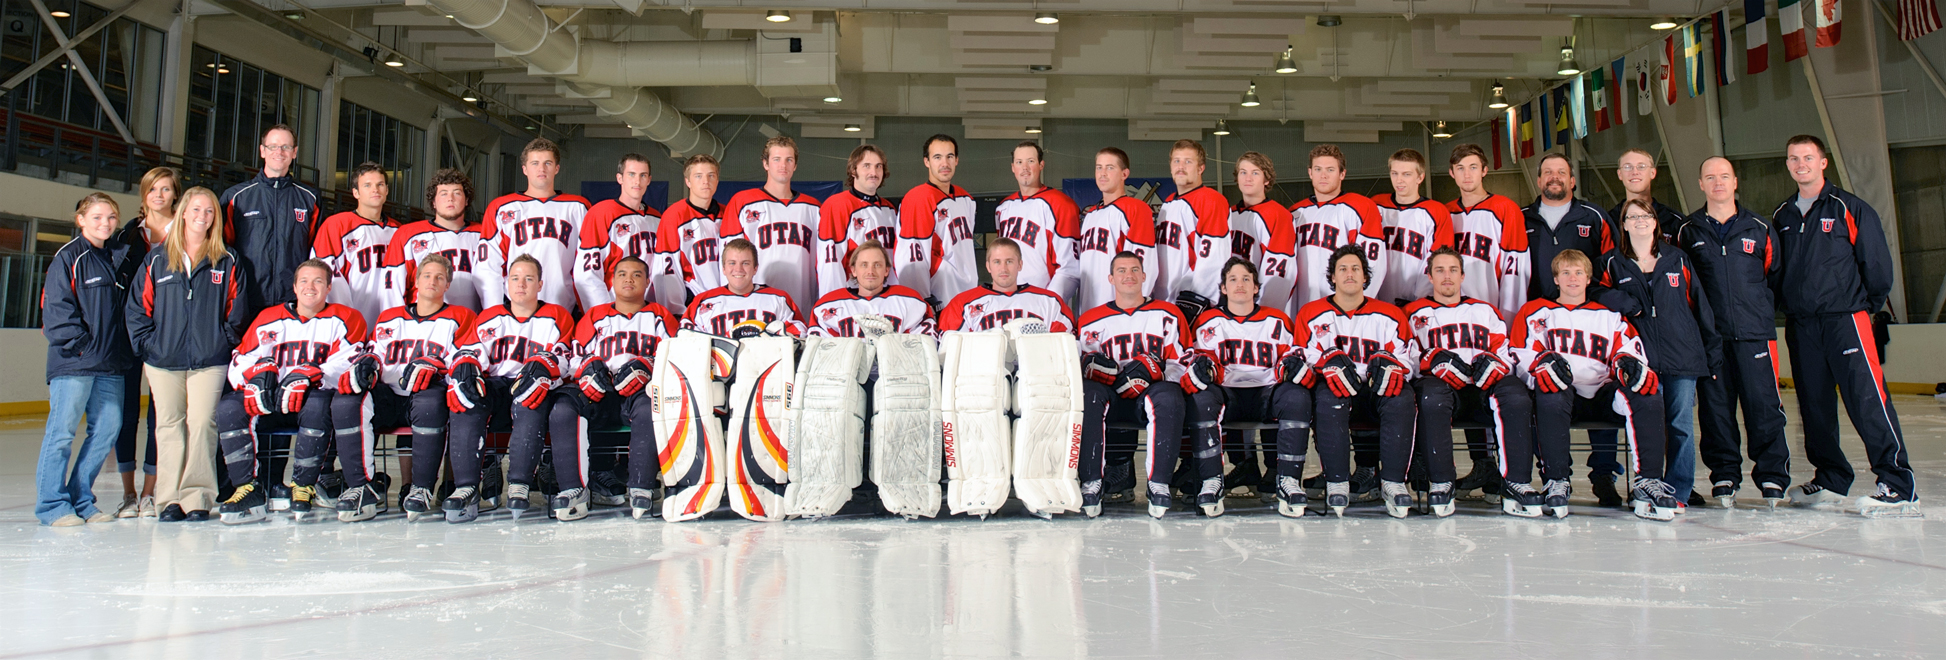 2010-11 University of Utah Hockey